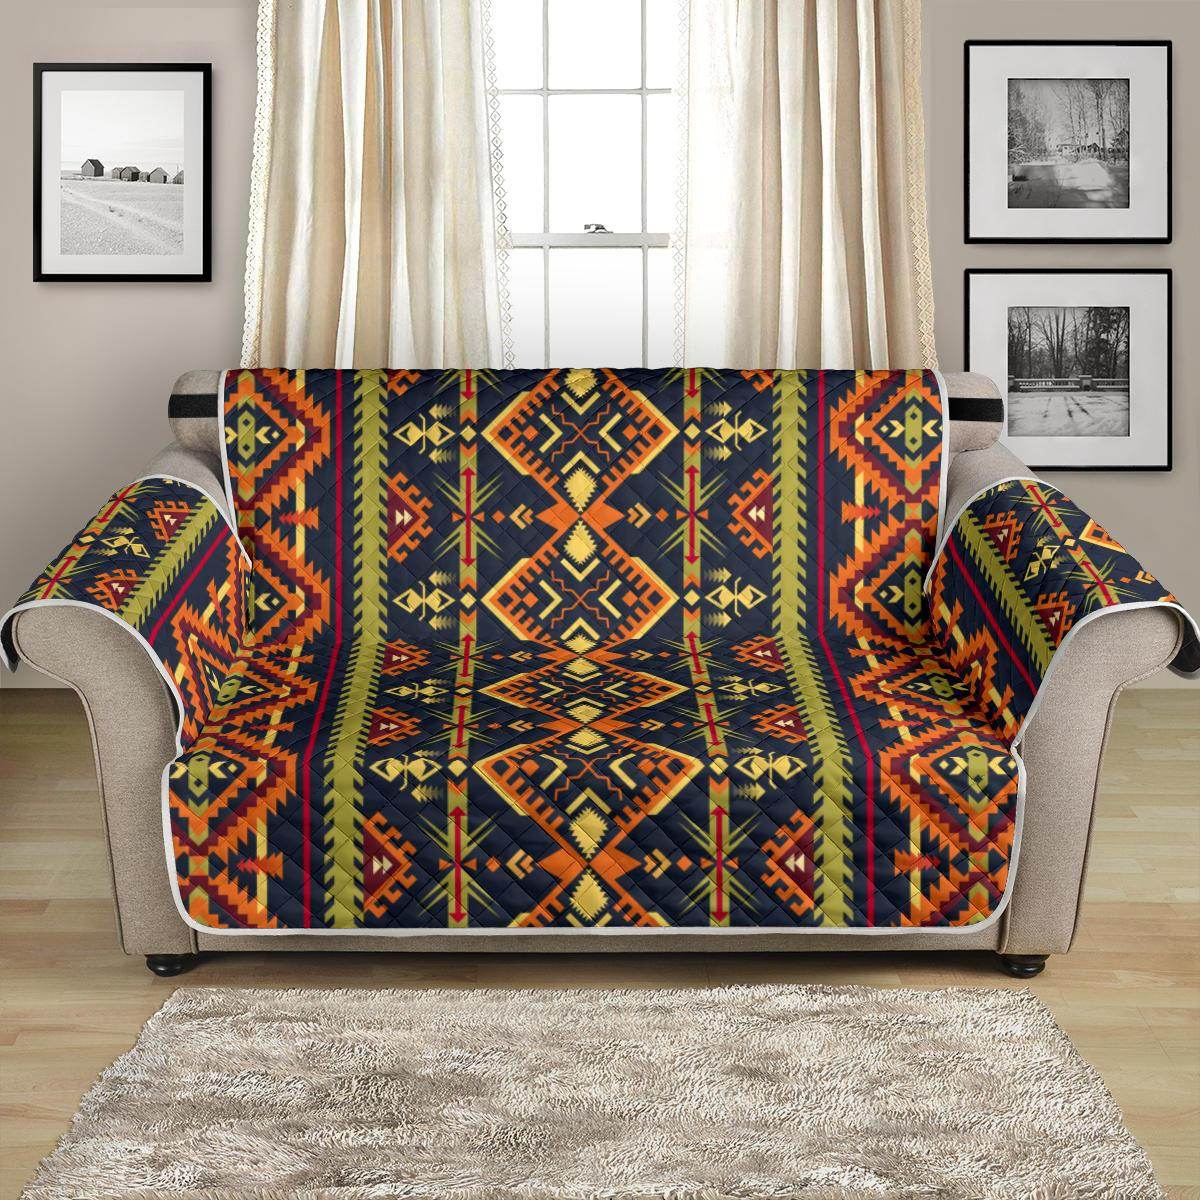 Kente Green Design African Print Loveseat Couch Cover Protector